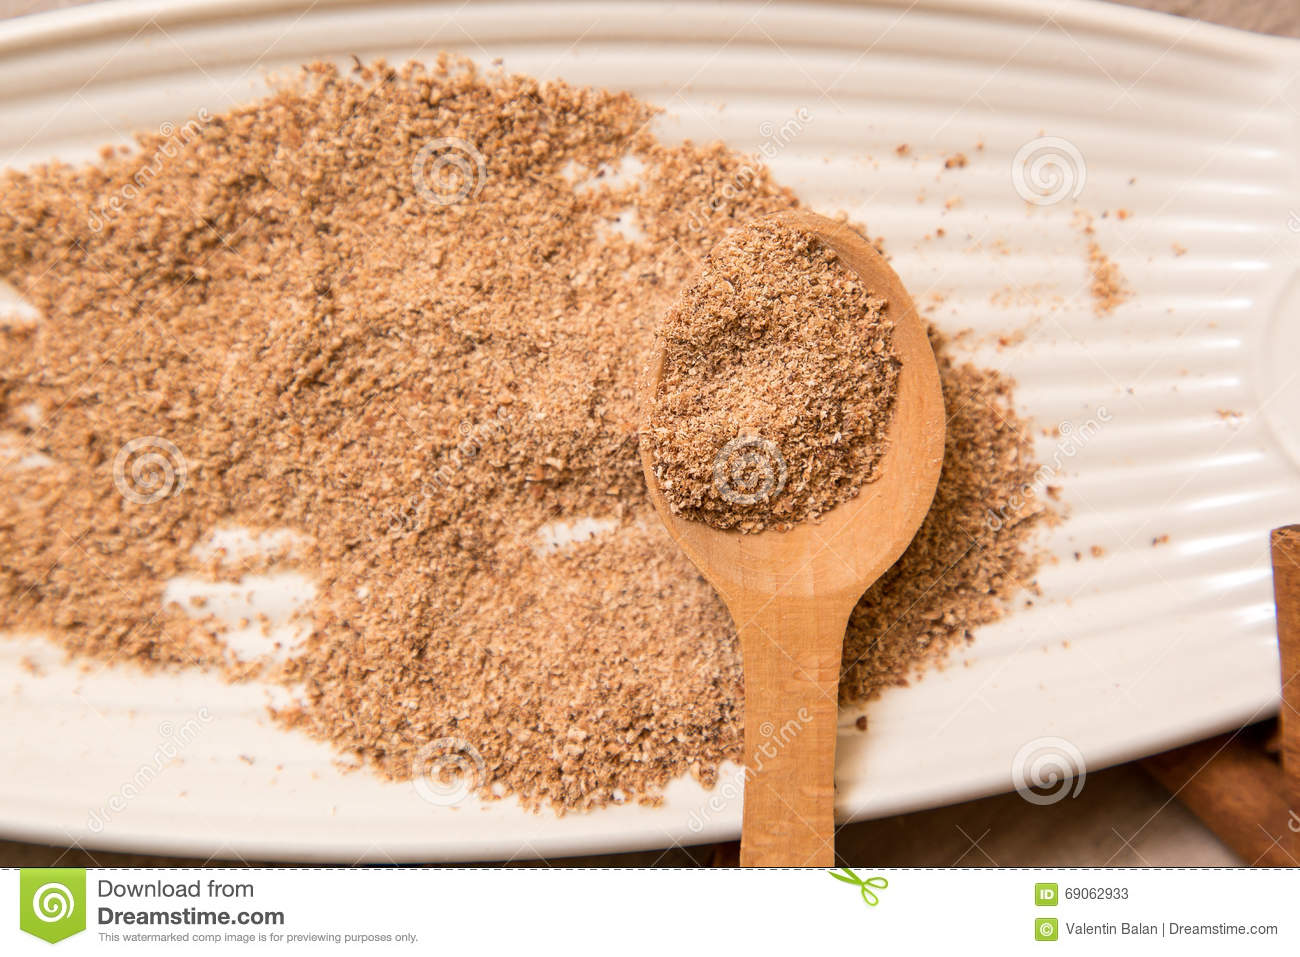 Ground Nutmeg Spices In A Ceramic Plate Stock Image - Image of ...